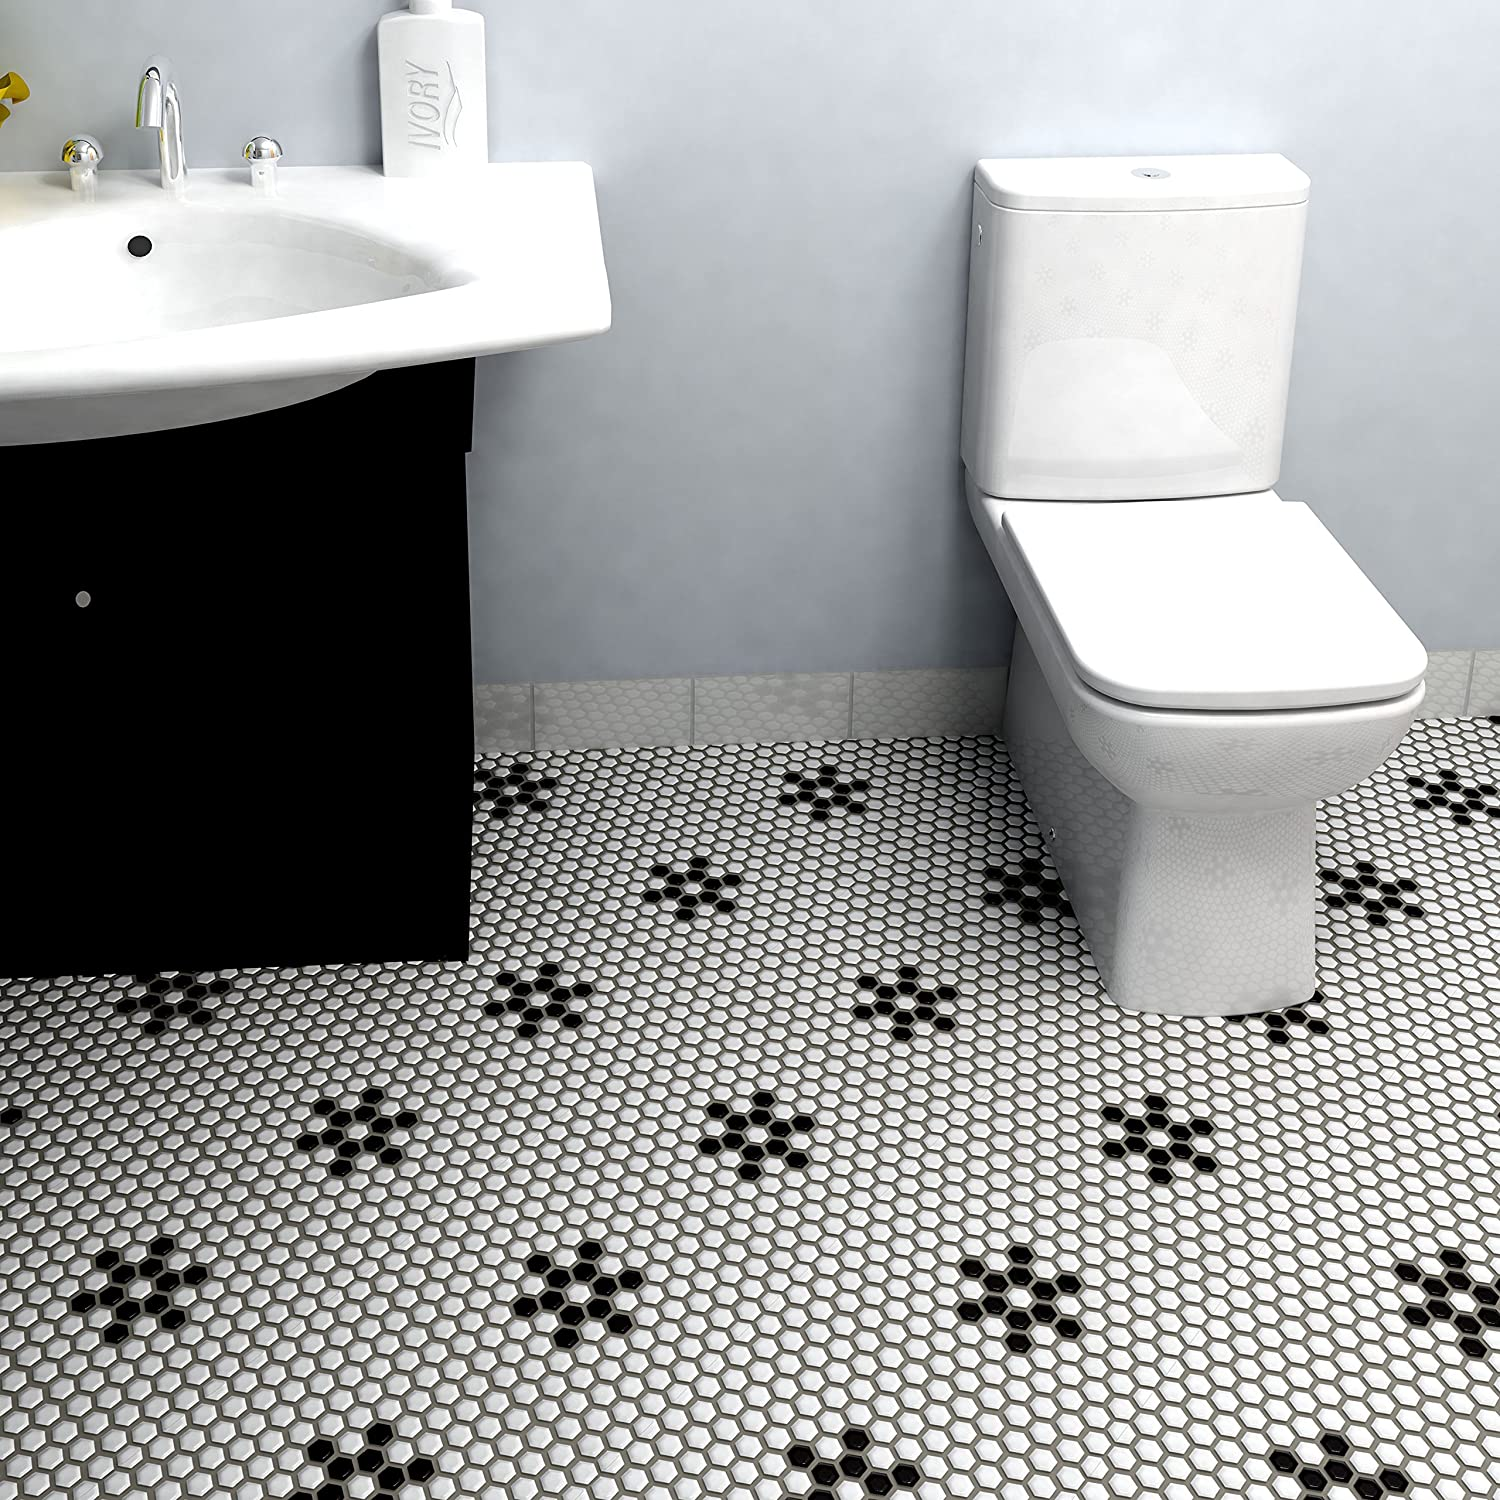 SomerTile FXLM1HMS Retro Hex Snowflake Porcelain Floor and Wall Tile ...